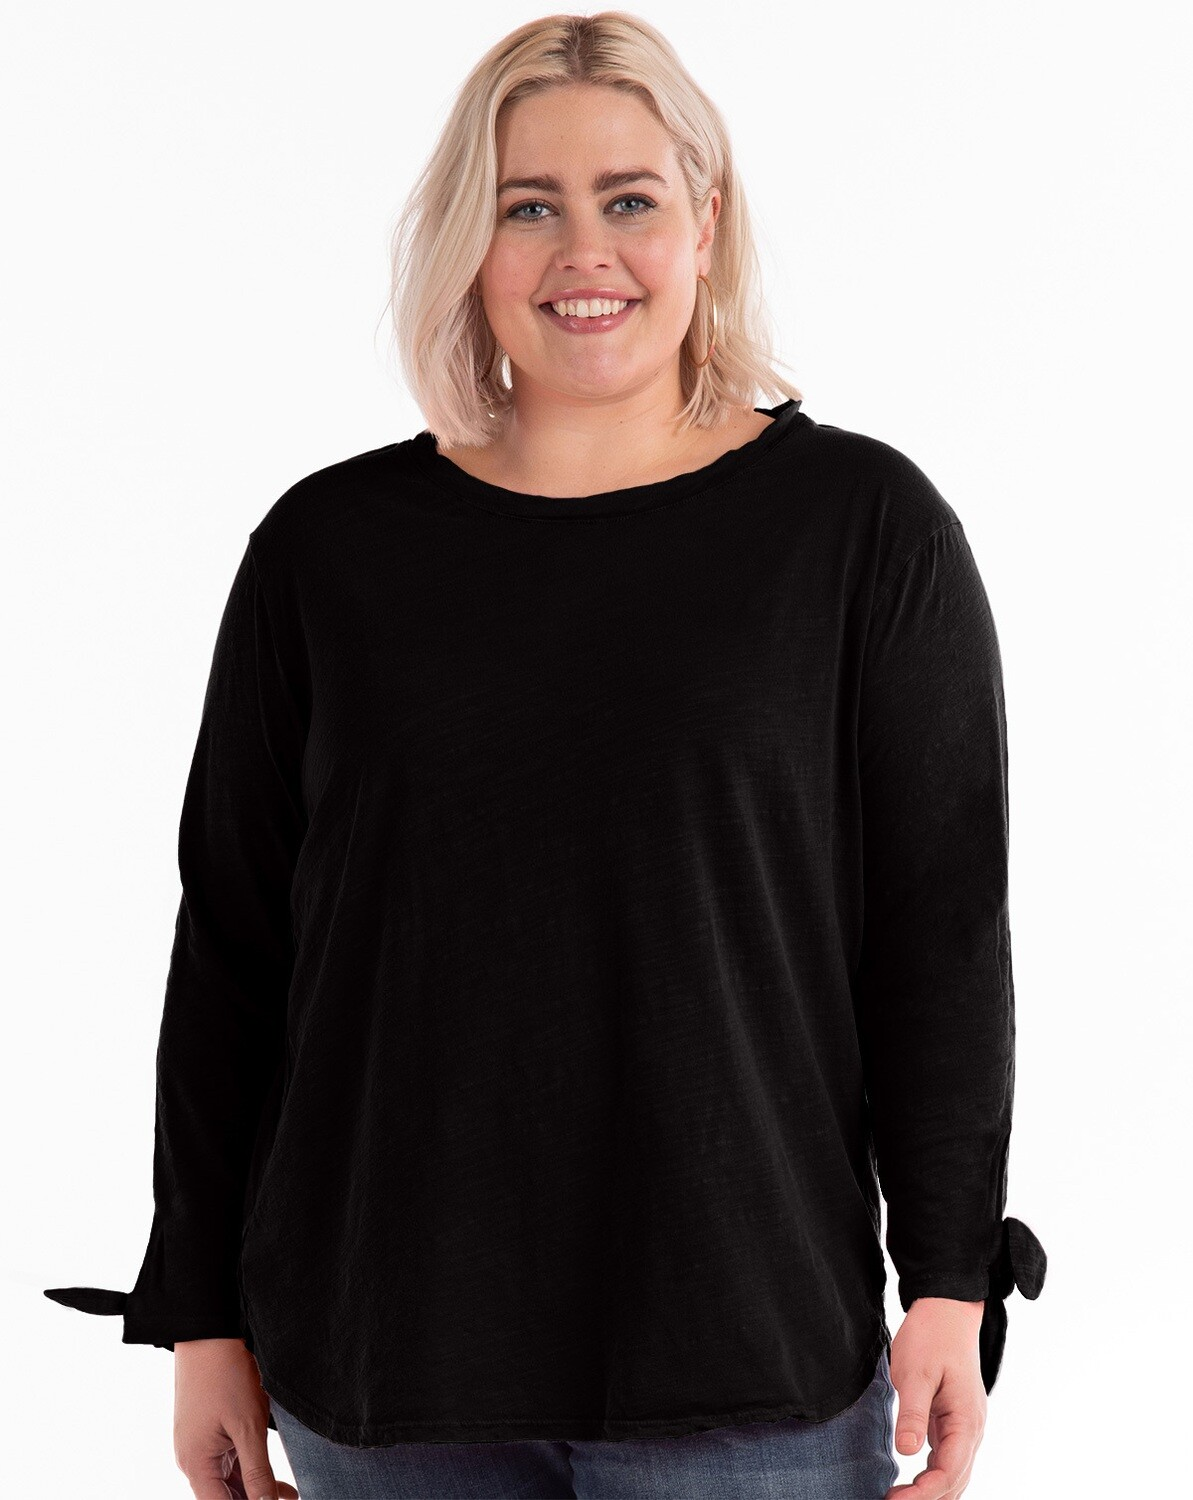 ETHTIPD Plus Catalina Tie Sleeve in Black